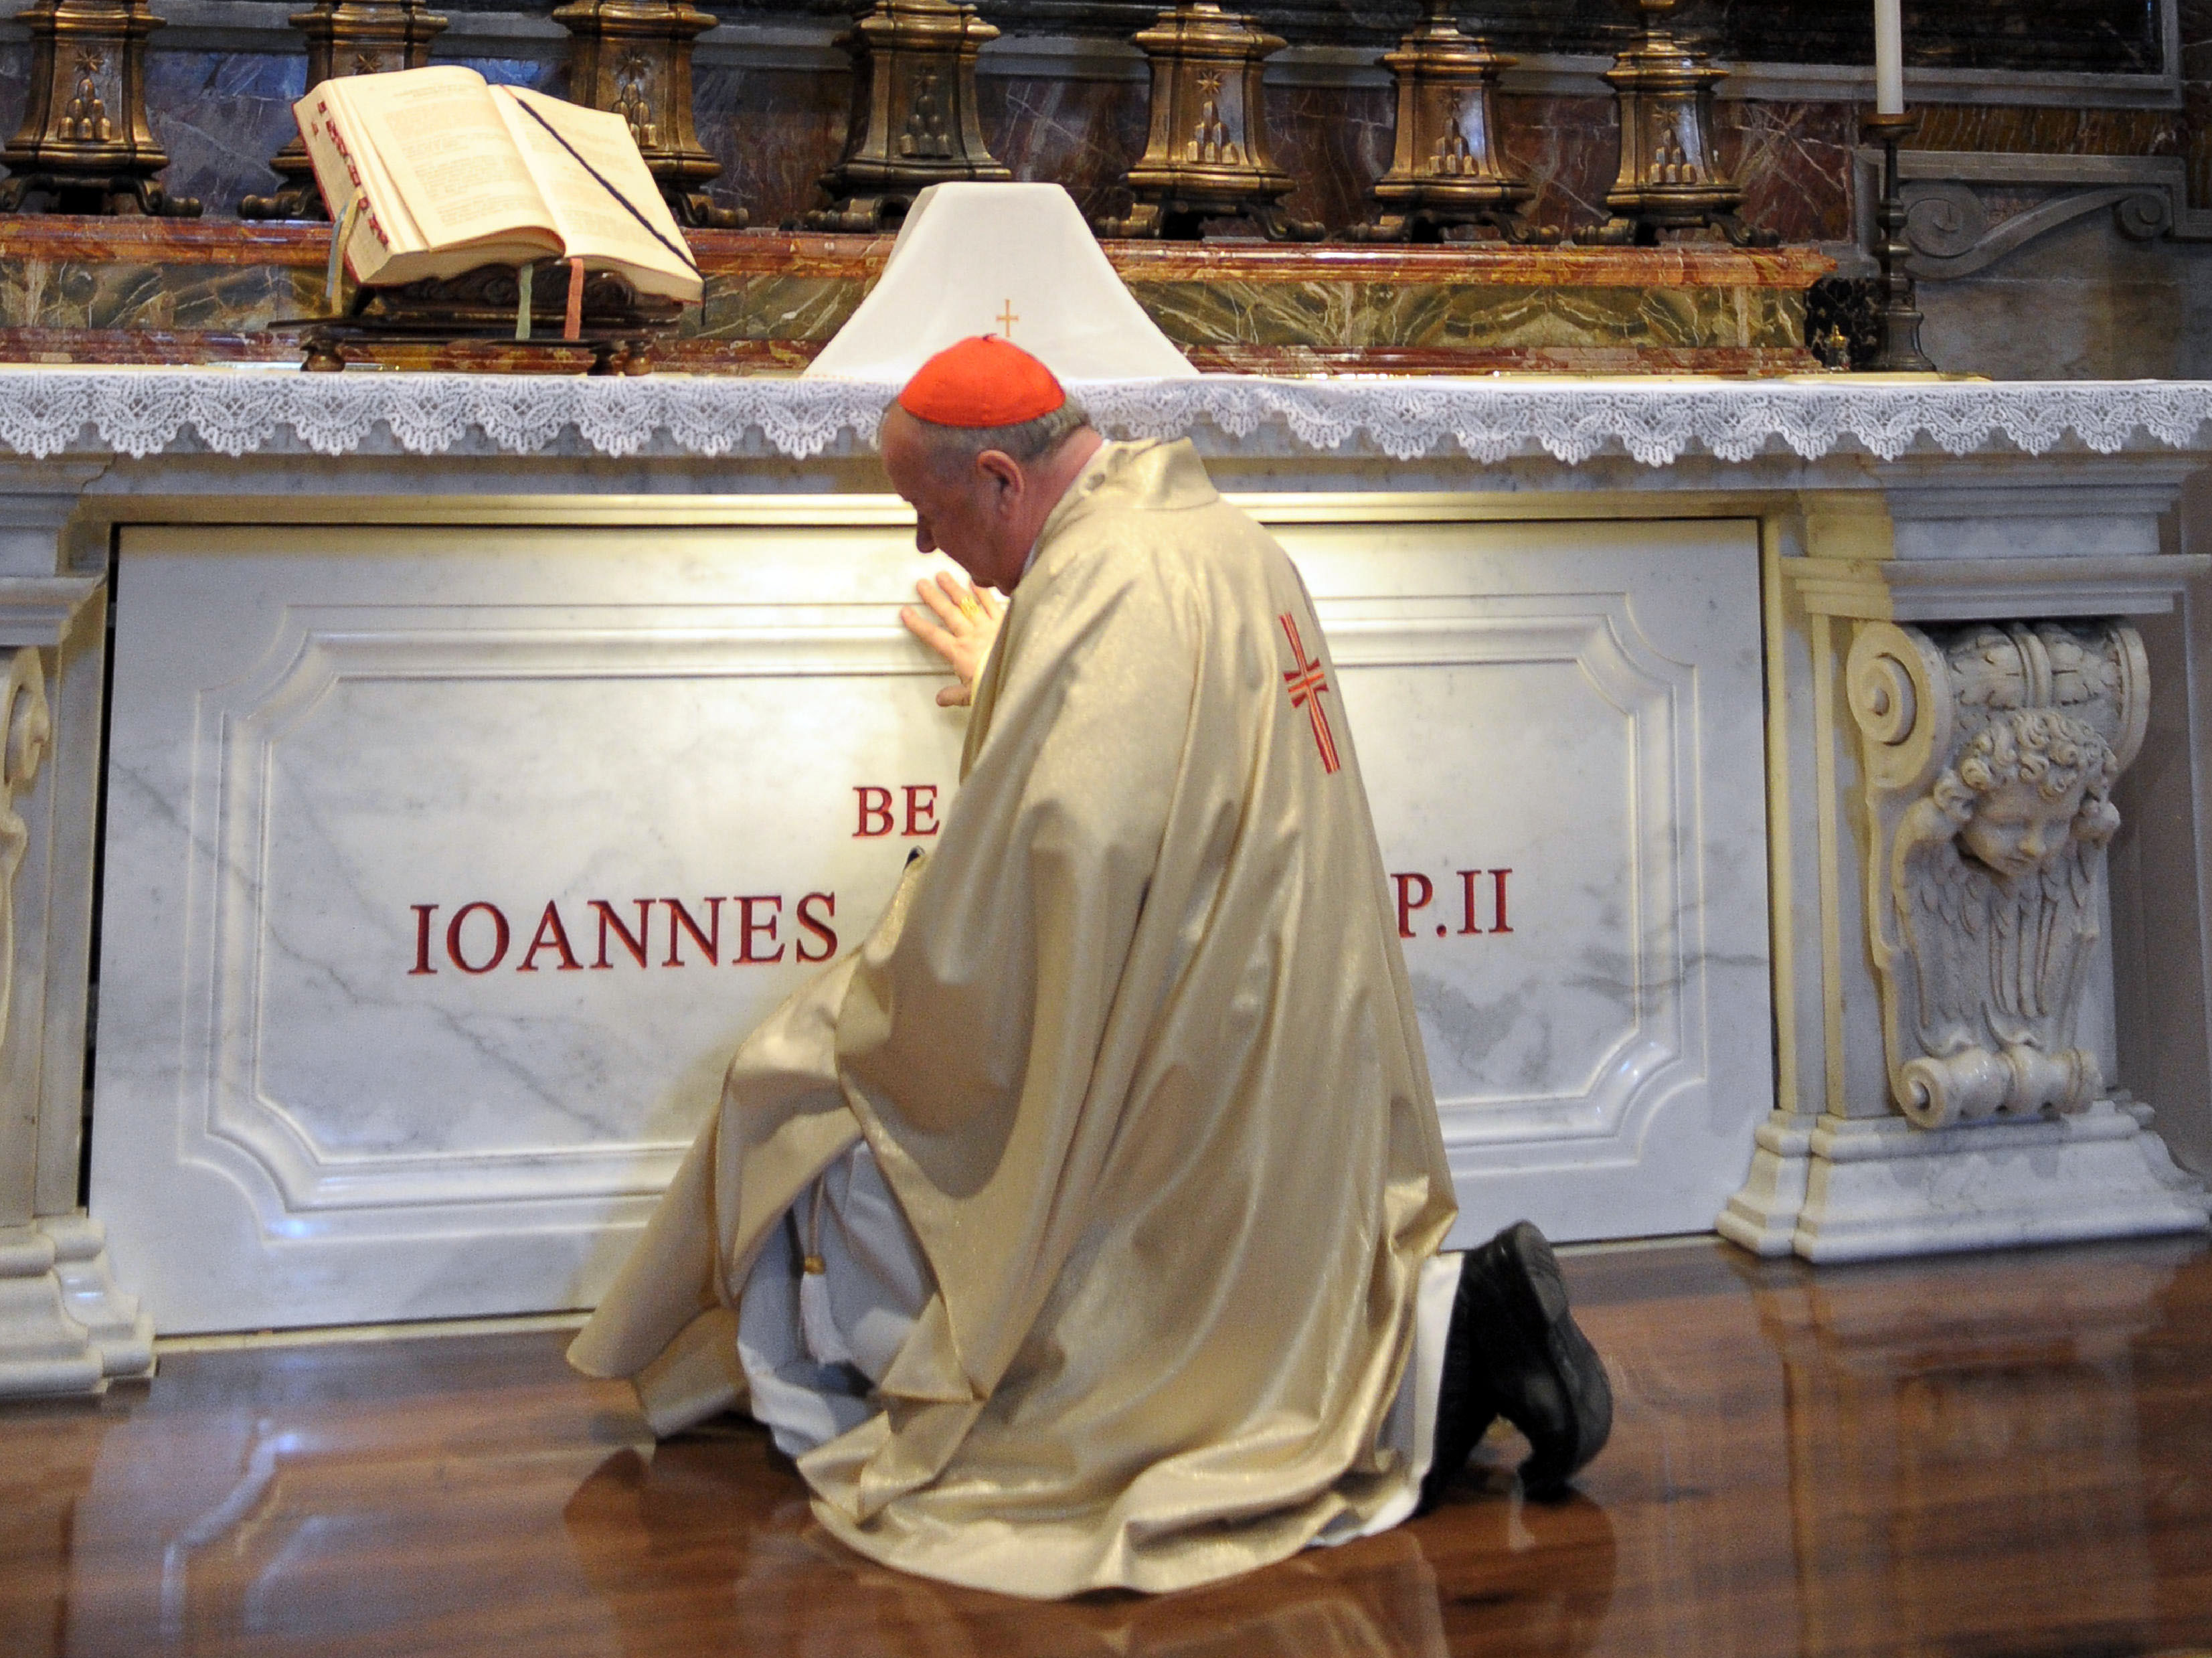 Second Reported Miracle Paves Way For Pope John Paul's Sainthood